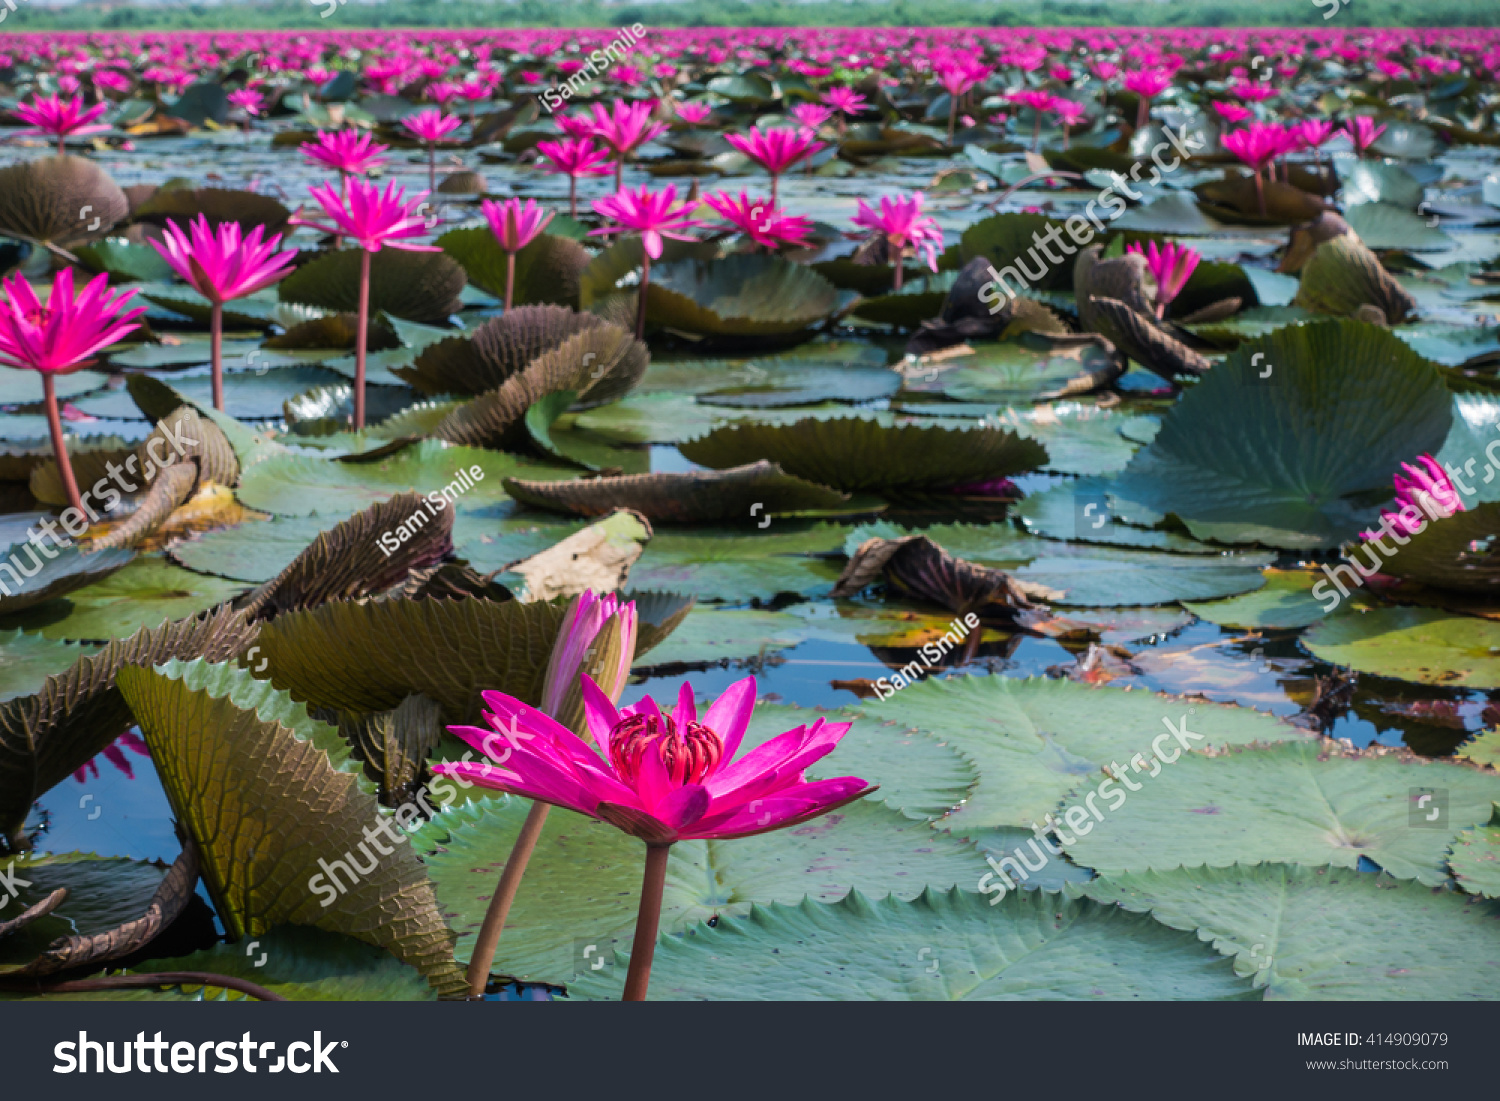 Beautiful waterlily lotus flower complimented by stock photo beautiful waterlily or lotus flower is complimented by the rich colors of the deep blue water izmirmasajfo